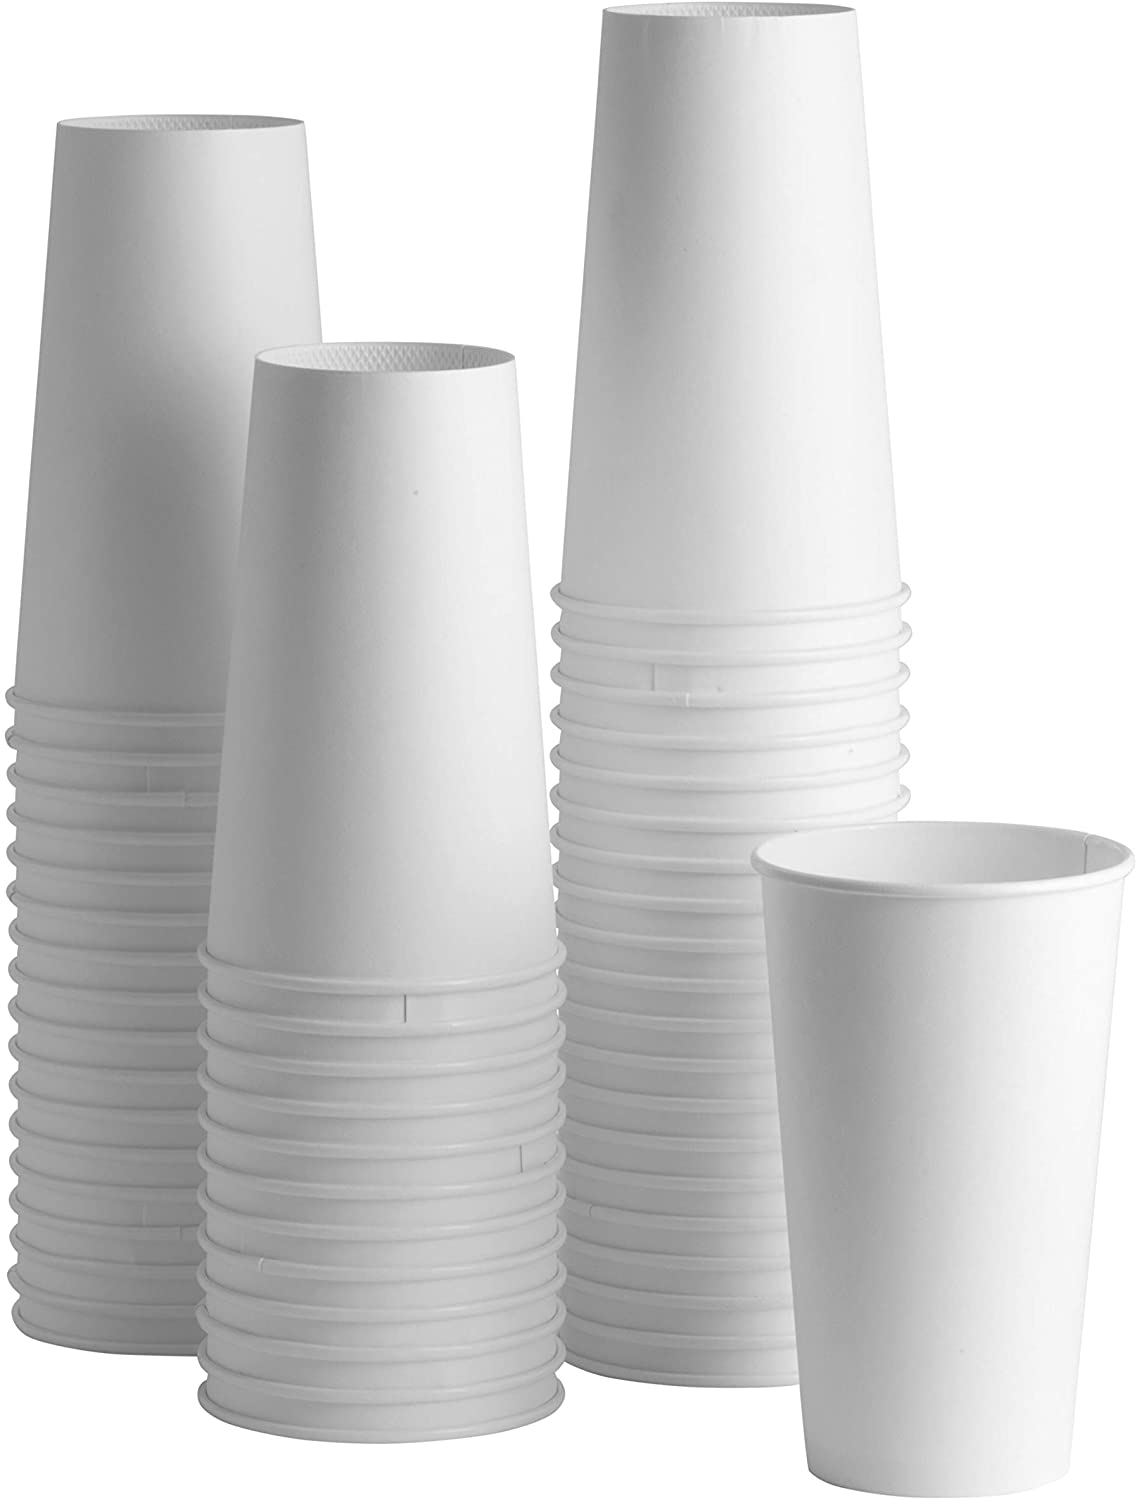 20 oz. White Paper Hot Cups [100 Pack] Coffee & Tea Cups